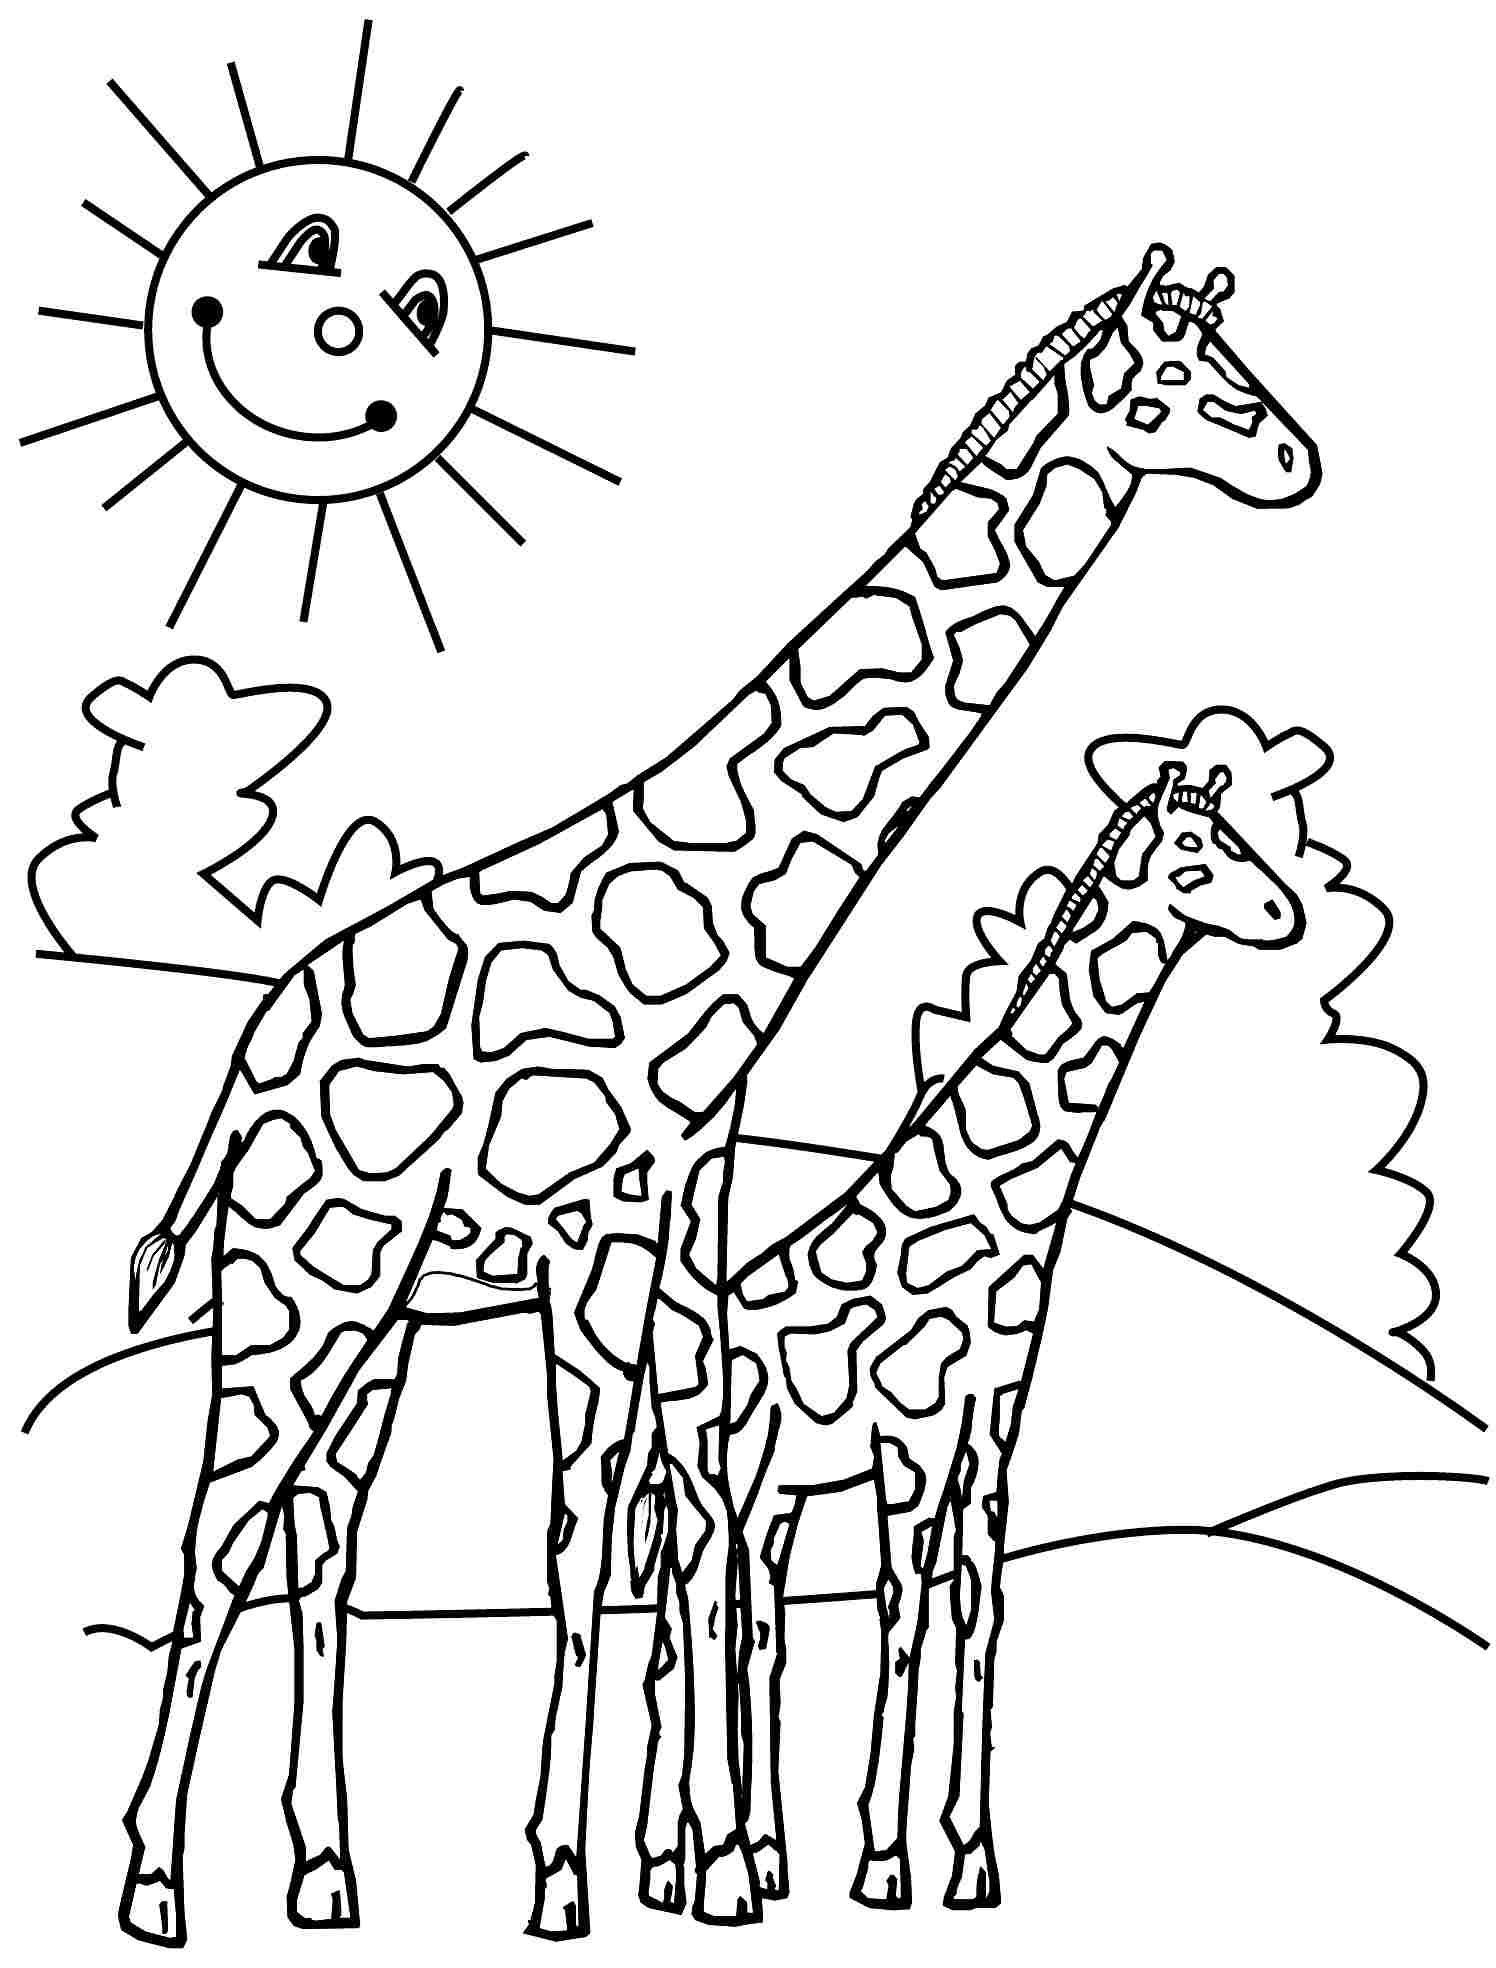 Tallest Giraffe Colouring Pages